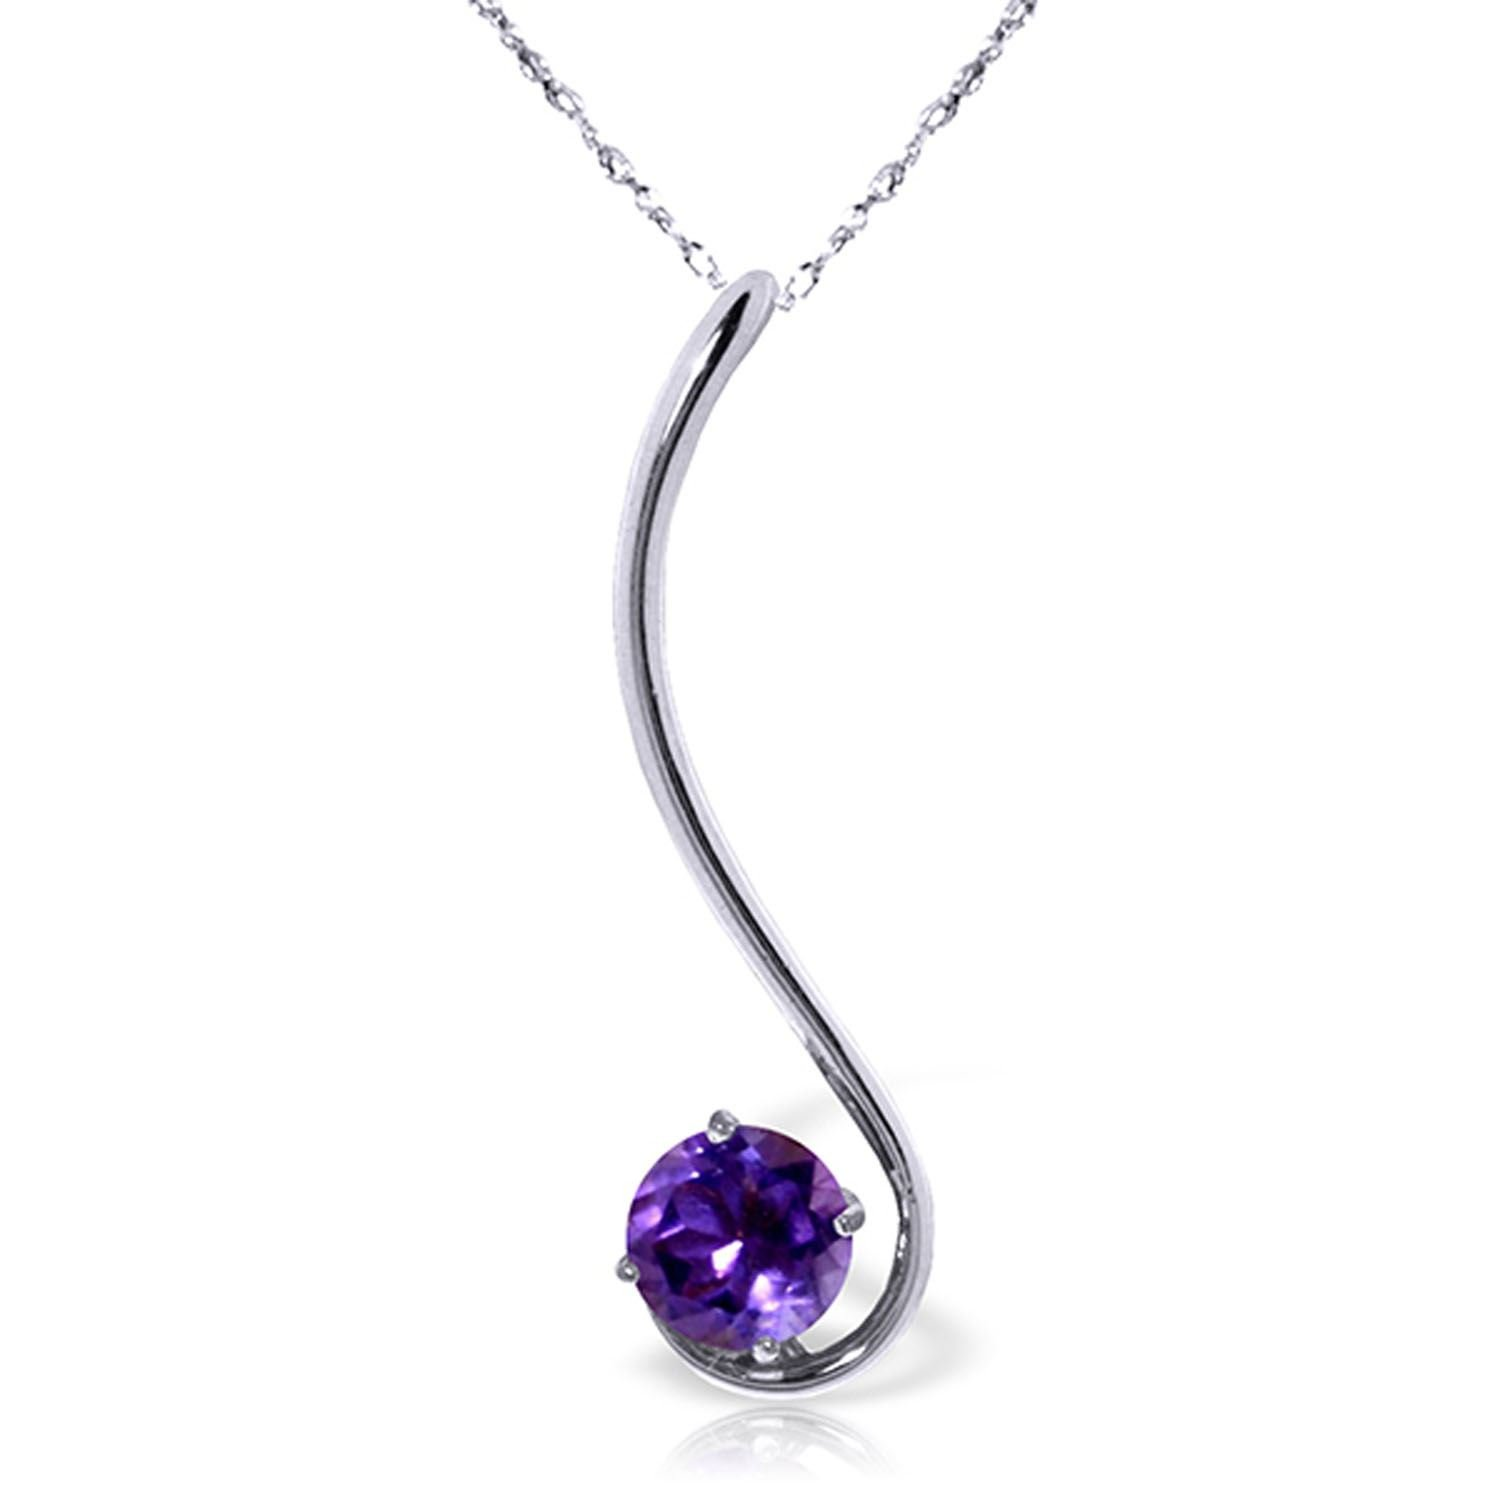 ALARRI 0.55 Carat 14K Solid White Gold Reason For Silence Amethyst Necklace with 18 Inch Chain Length